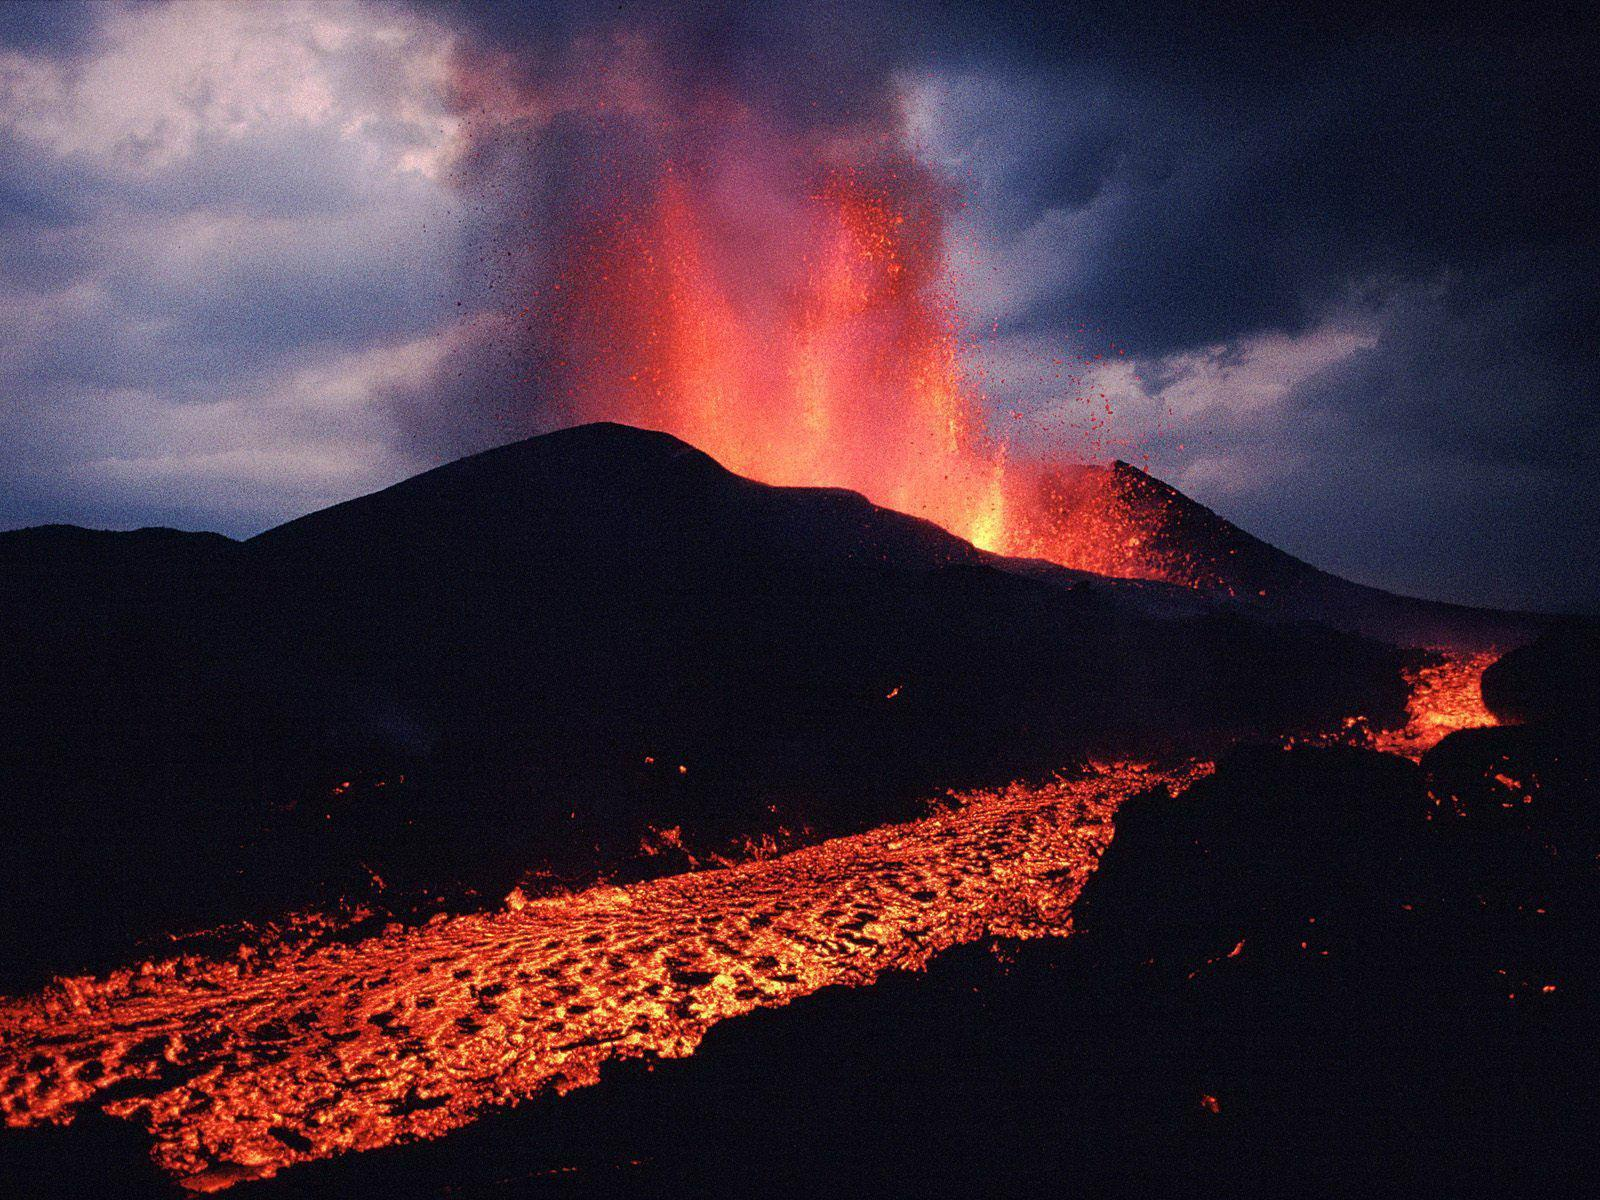 volcano eruption wallpaper hd - photo #2